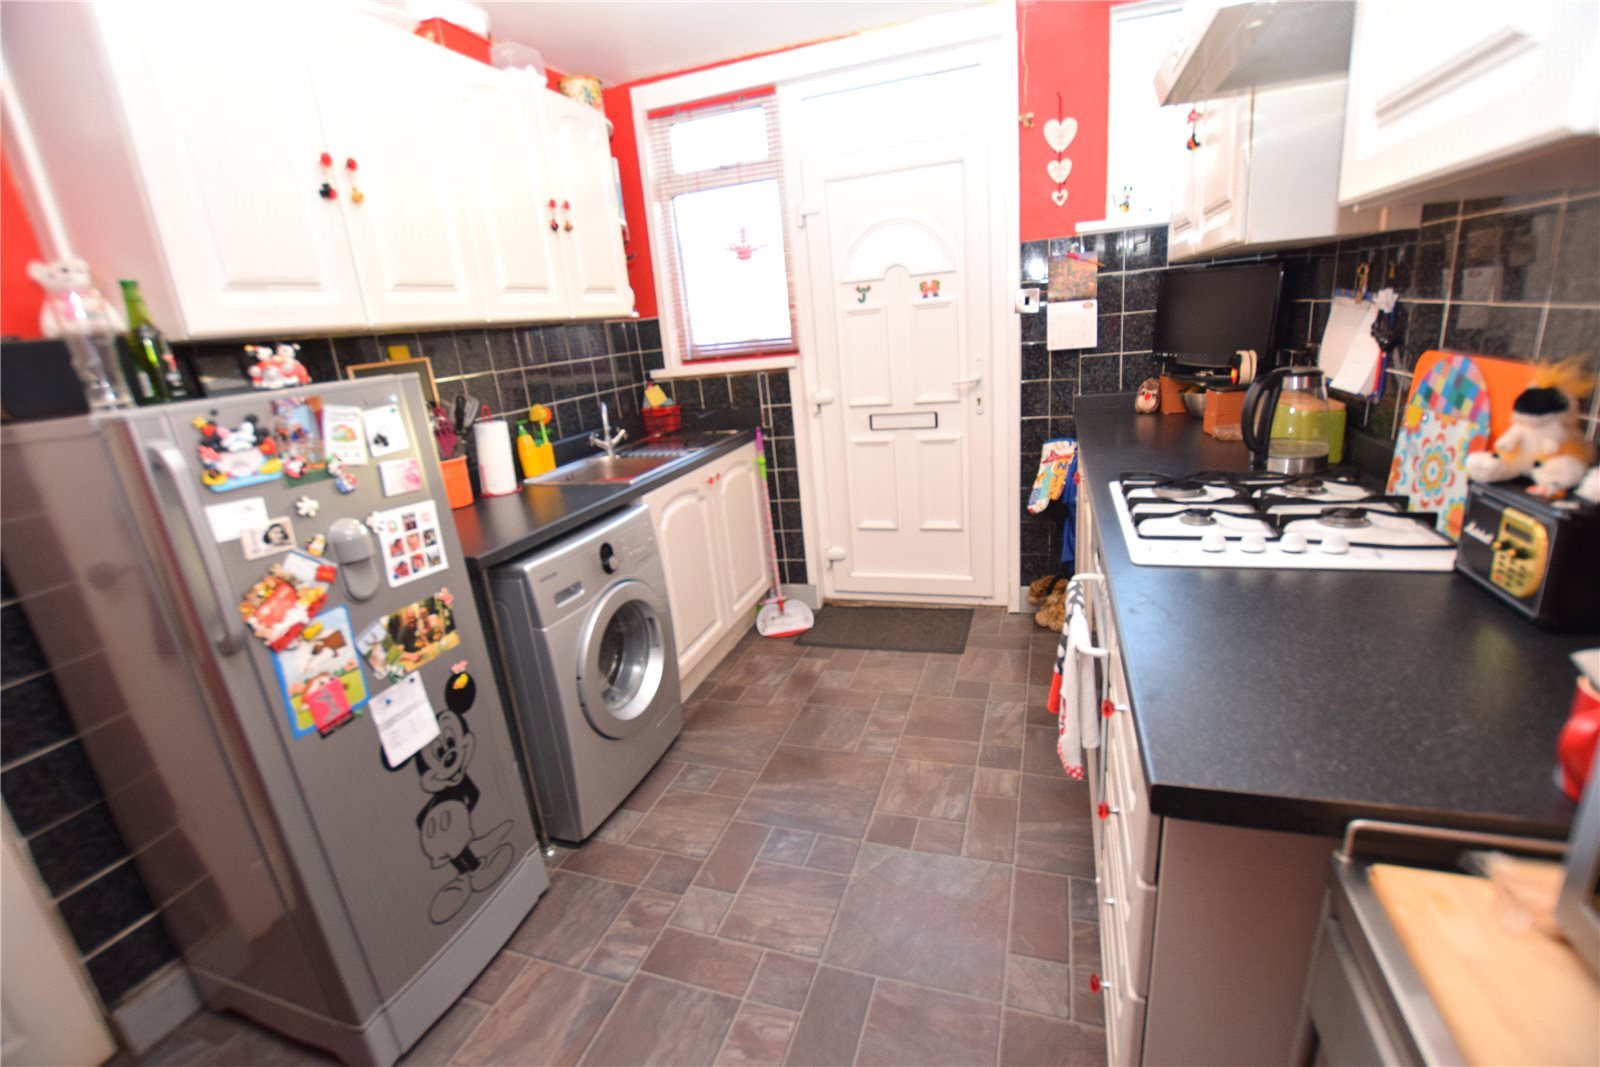 Property for sale in Amrley, Interior kitchen